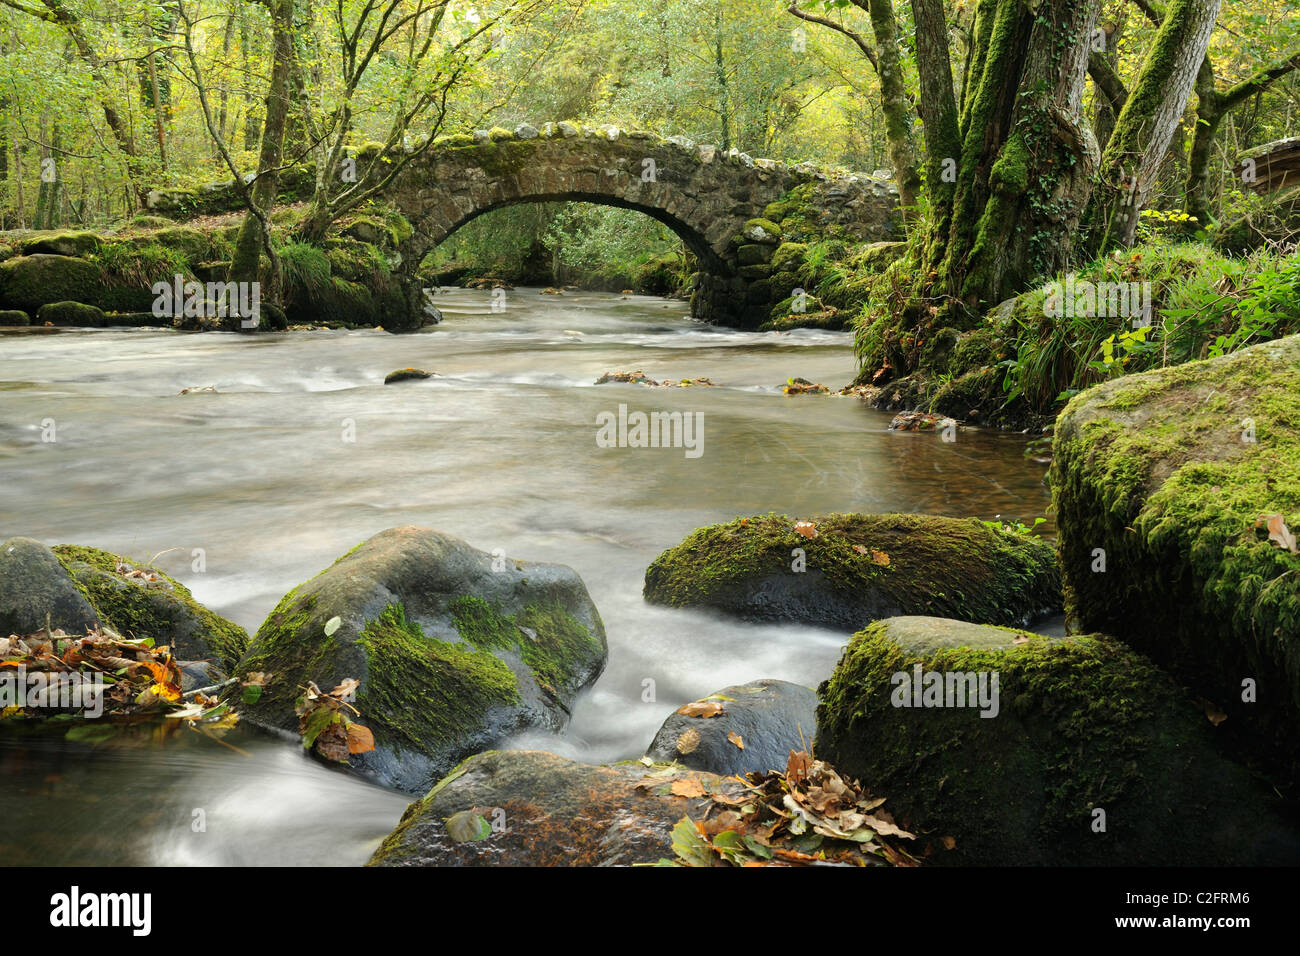 Moss covered rocks in the River Bovey at Hisley Woods, Devon. - Stock Image